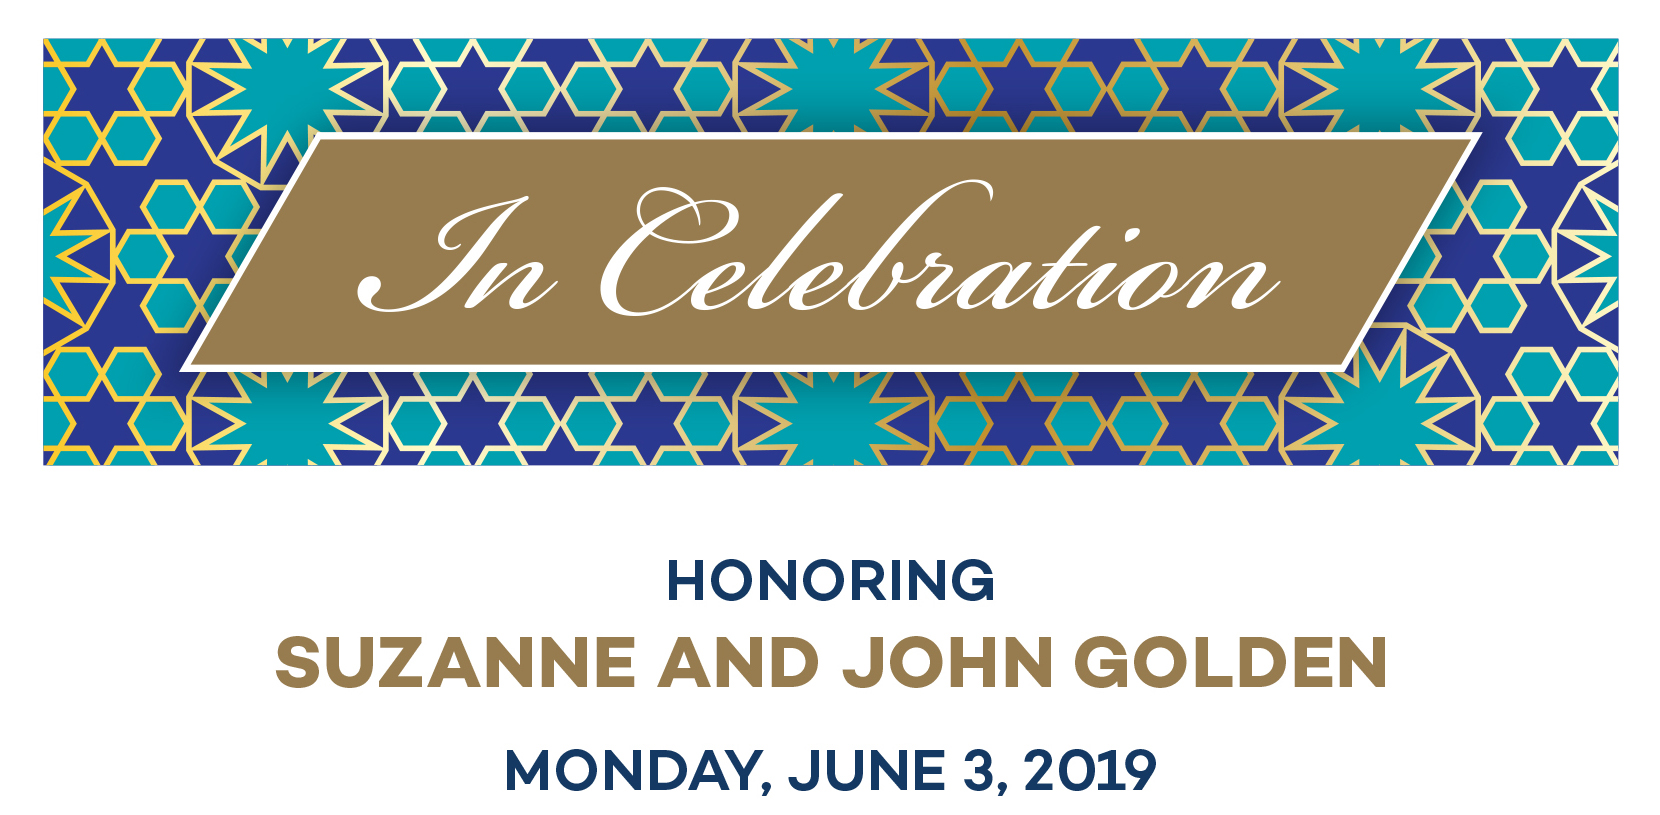 Honoring Suzanne and John Golden